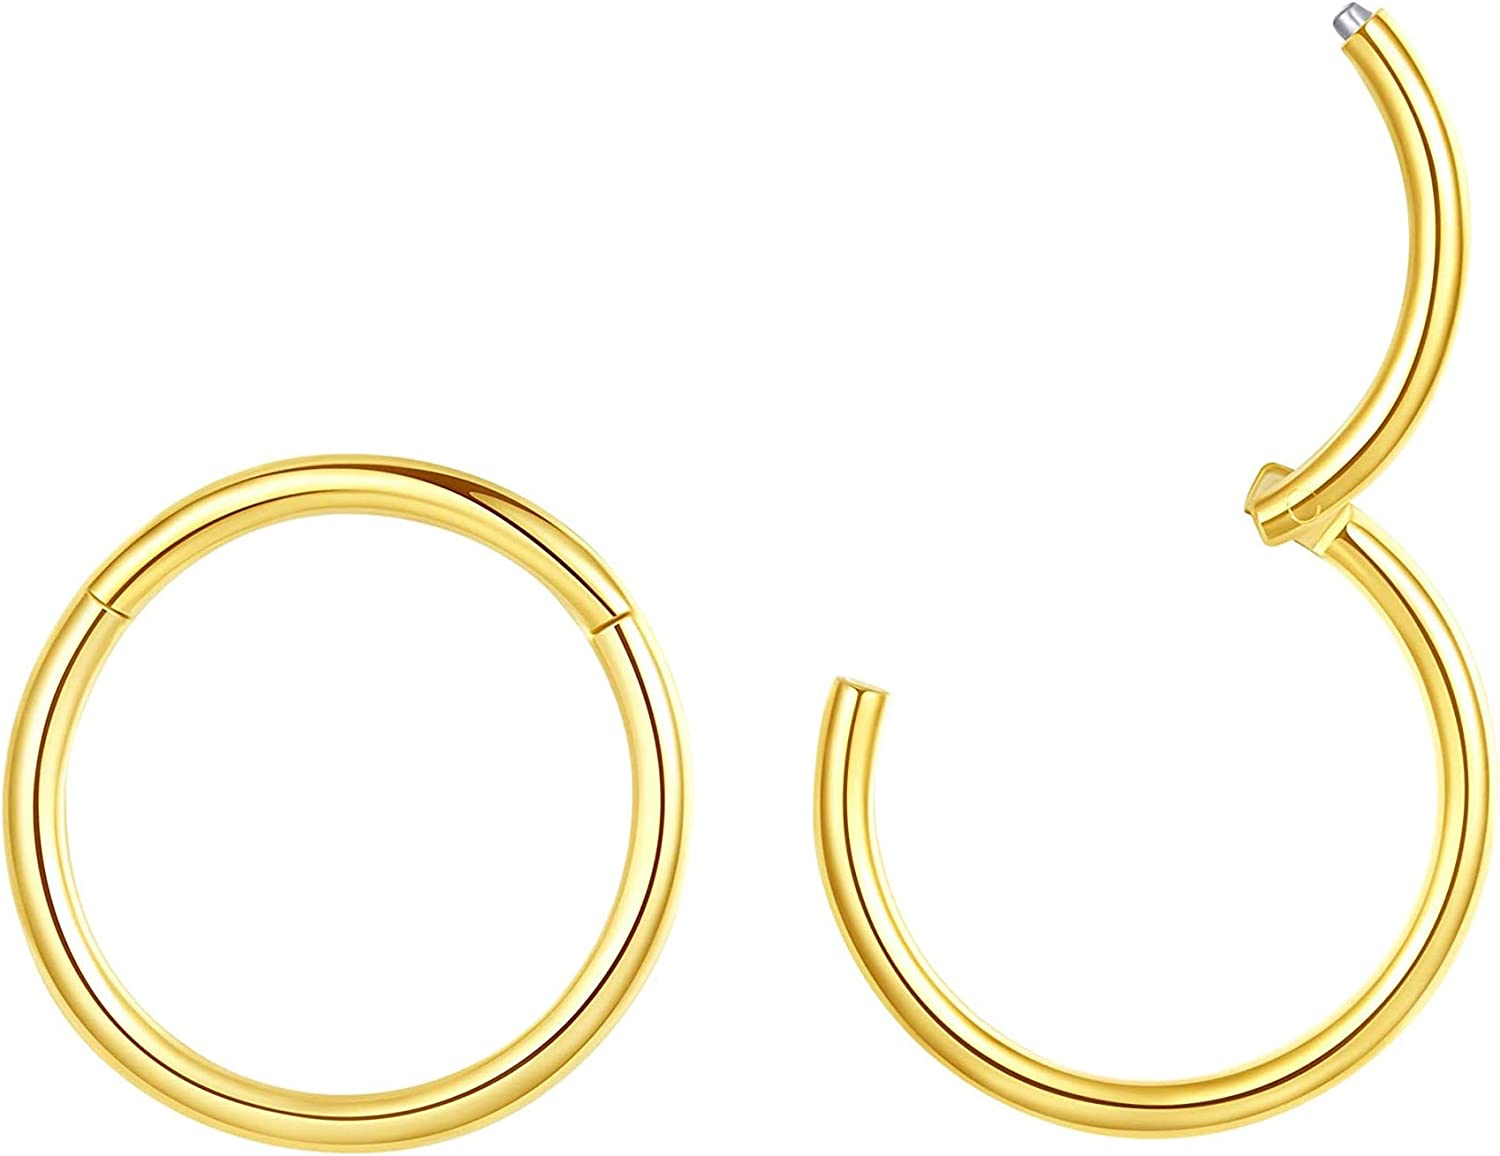 Nose Rings 2pcs G23 Titanium Piercing Jewelry Hinged Segment Ring Body Piercing Nose Hoop Lip Rings Nose Helix Cartilage Rook Earrings, 5 Colors